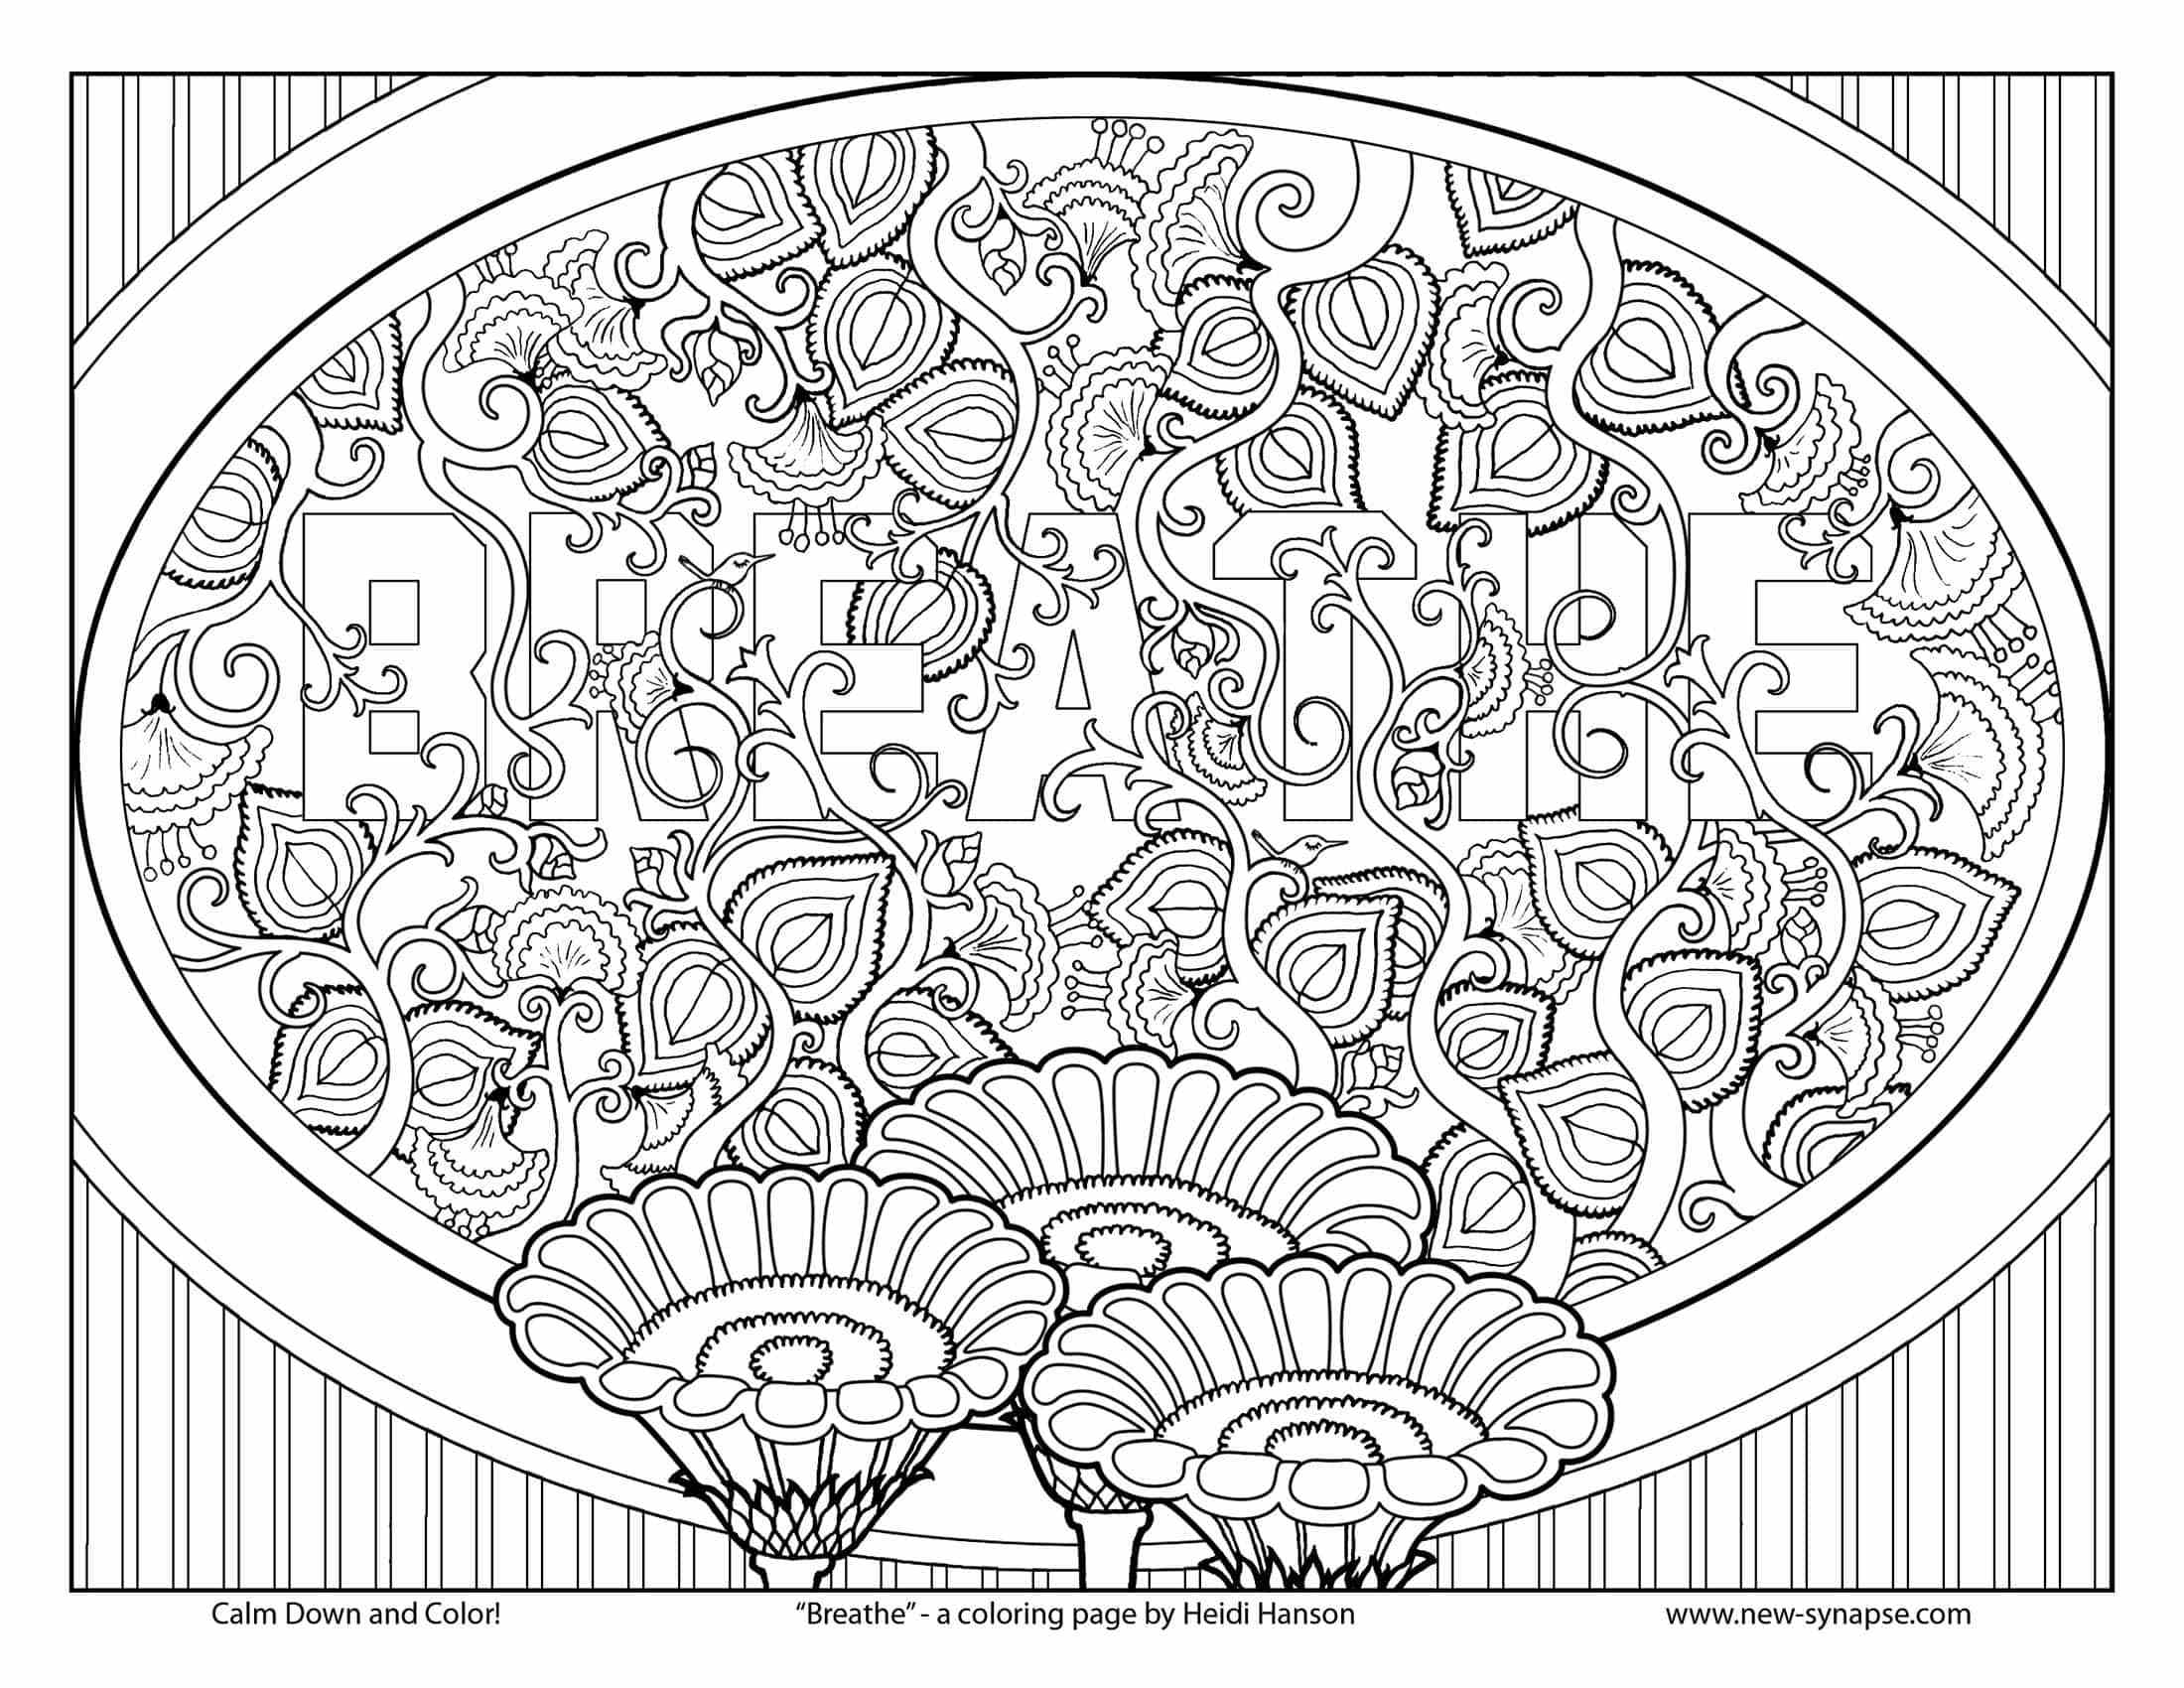 2200x1700 Calming Coloring Pages Free Printable For Adults